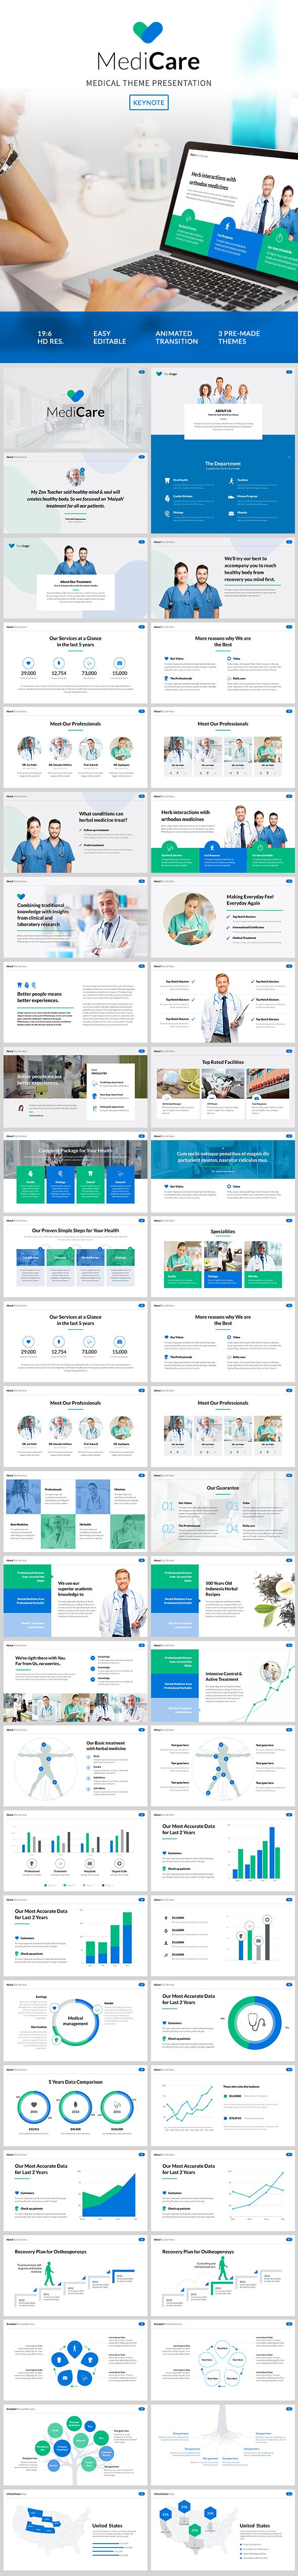 MediCare - Medical Theme Keynote Template